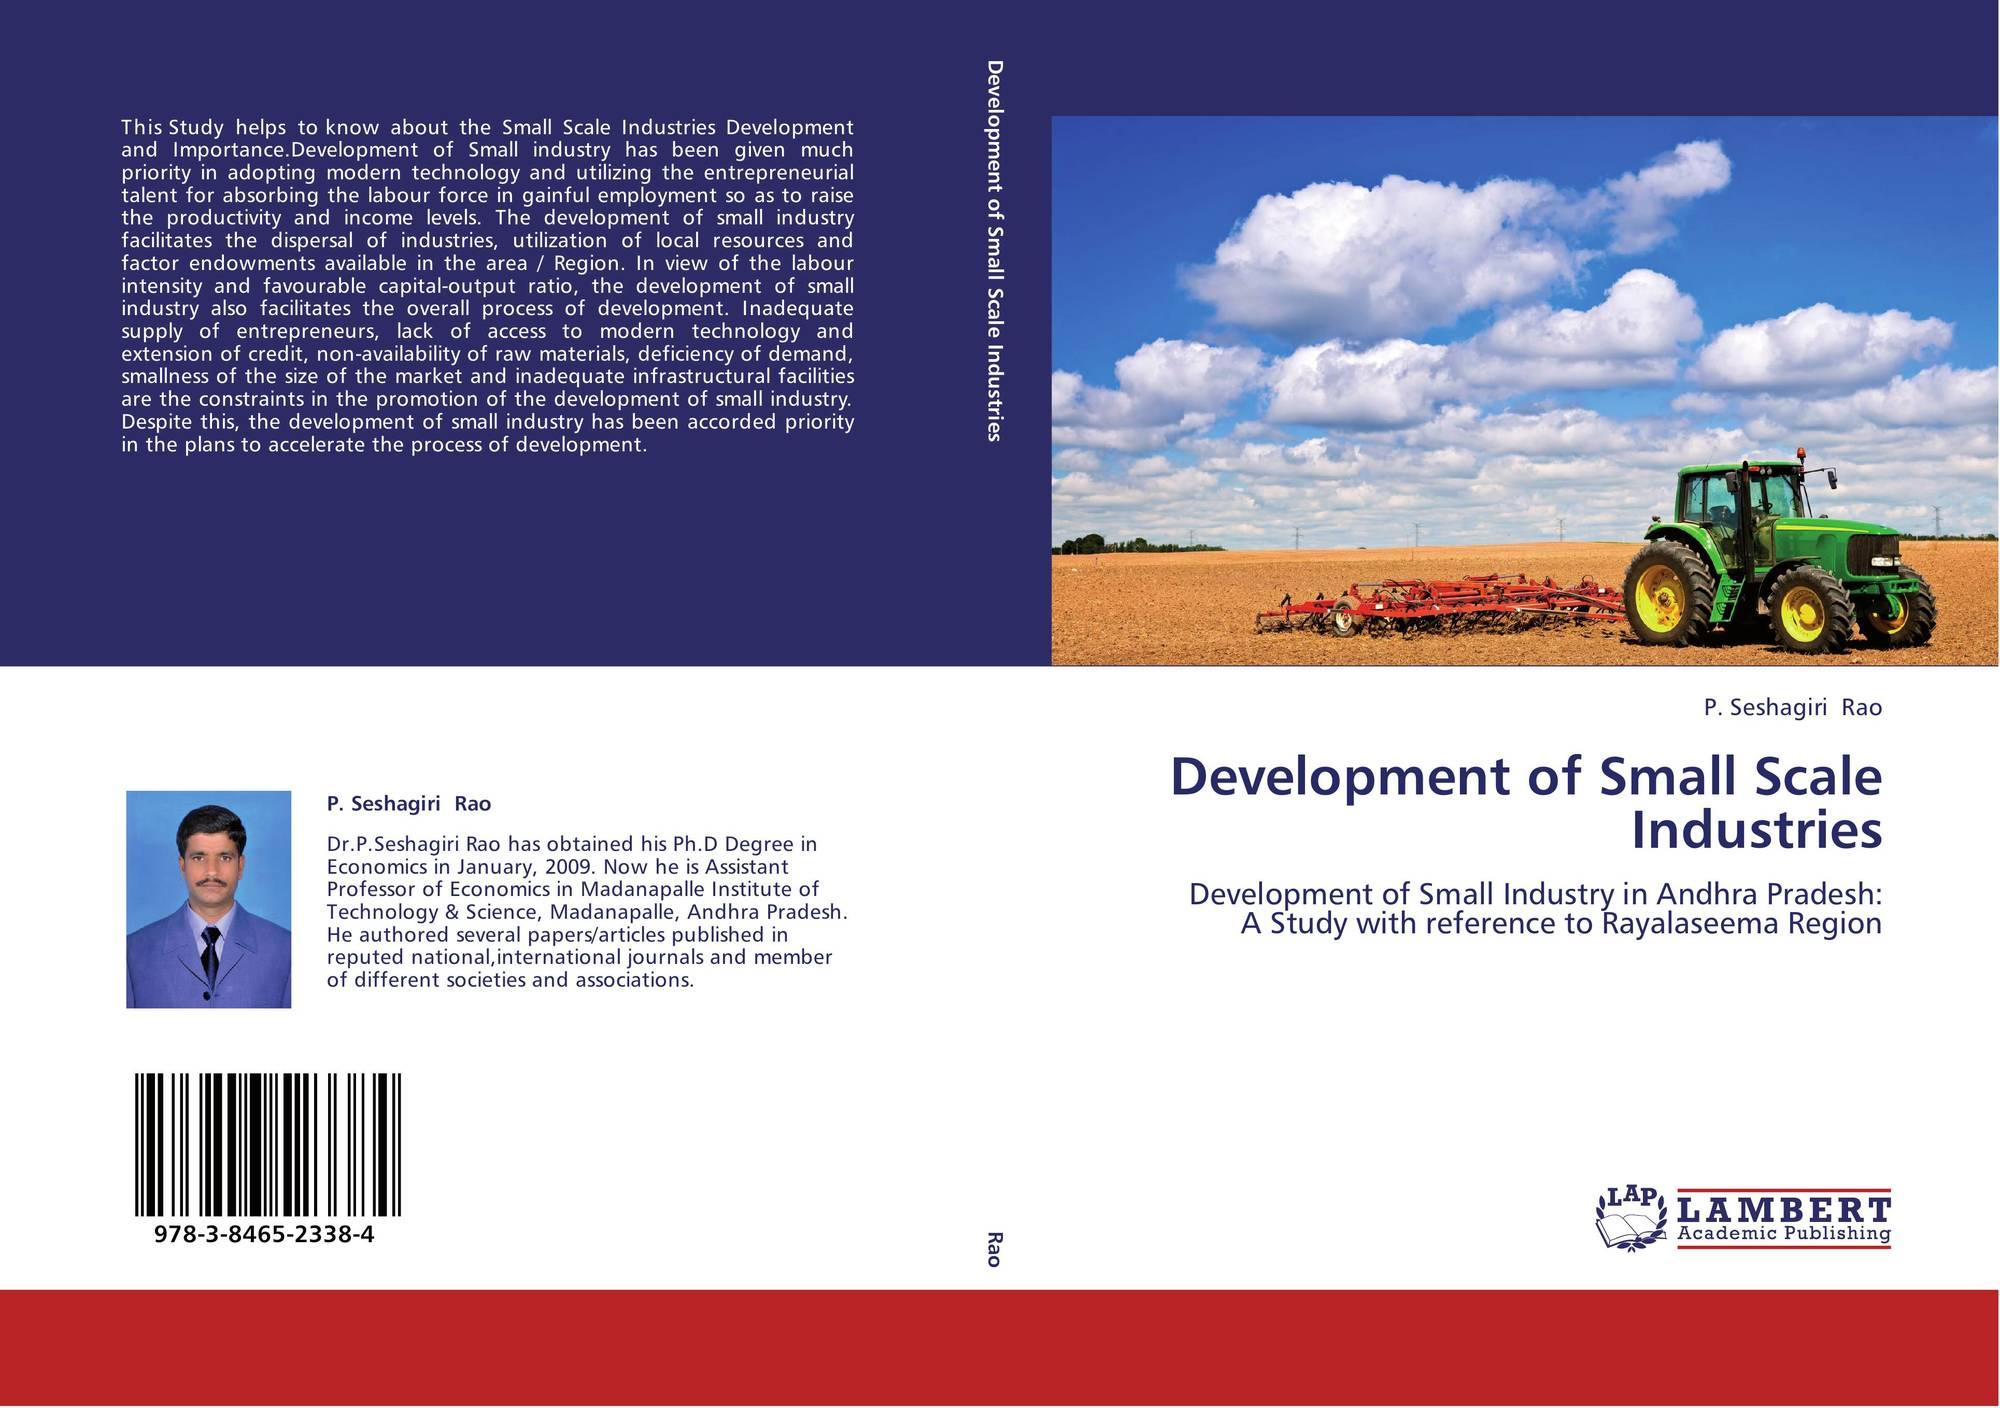 role of banks in agriculture and industrial devlopment The role of bank credit to the economy, the aggregate bank credit to the economy is used to estimate its impact growth, which is proxies by gross domestic product this credit is classified into credit to the public sector.